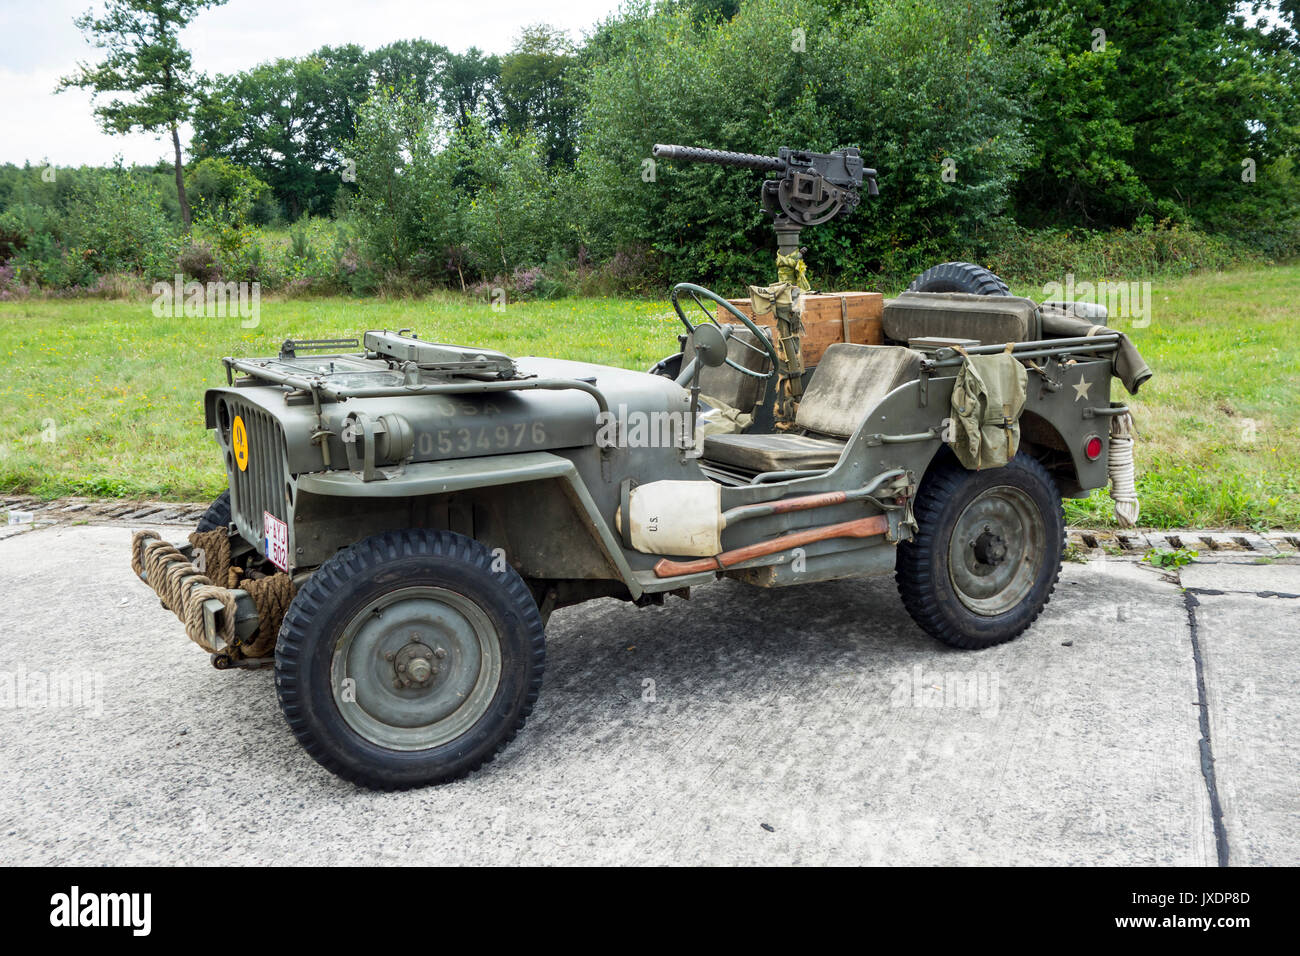 Jeep mb jeep : World War Two US Army Willys MB jeep, four-wheel drive utility ...